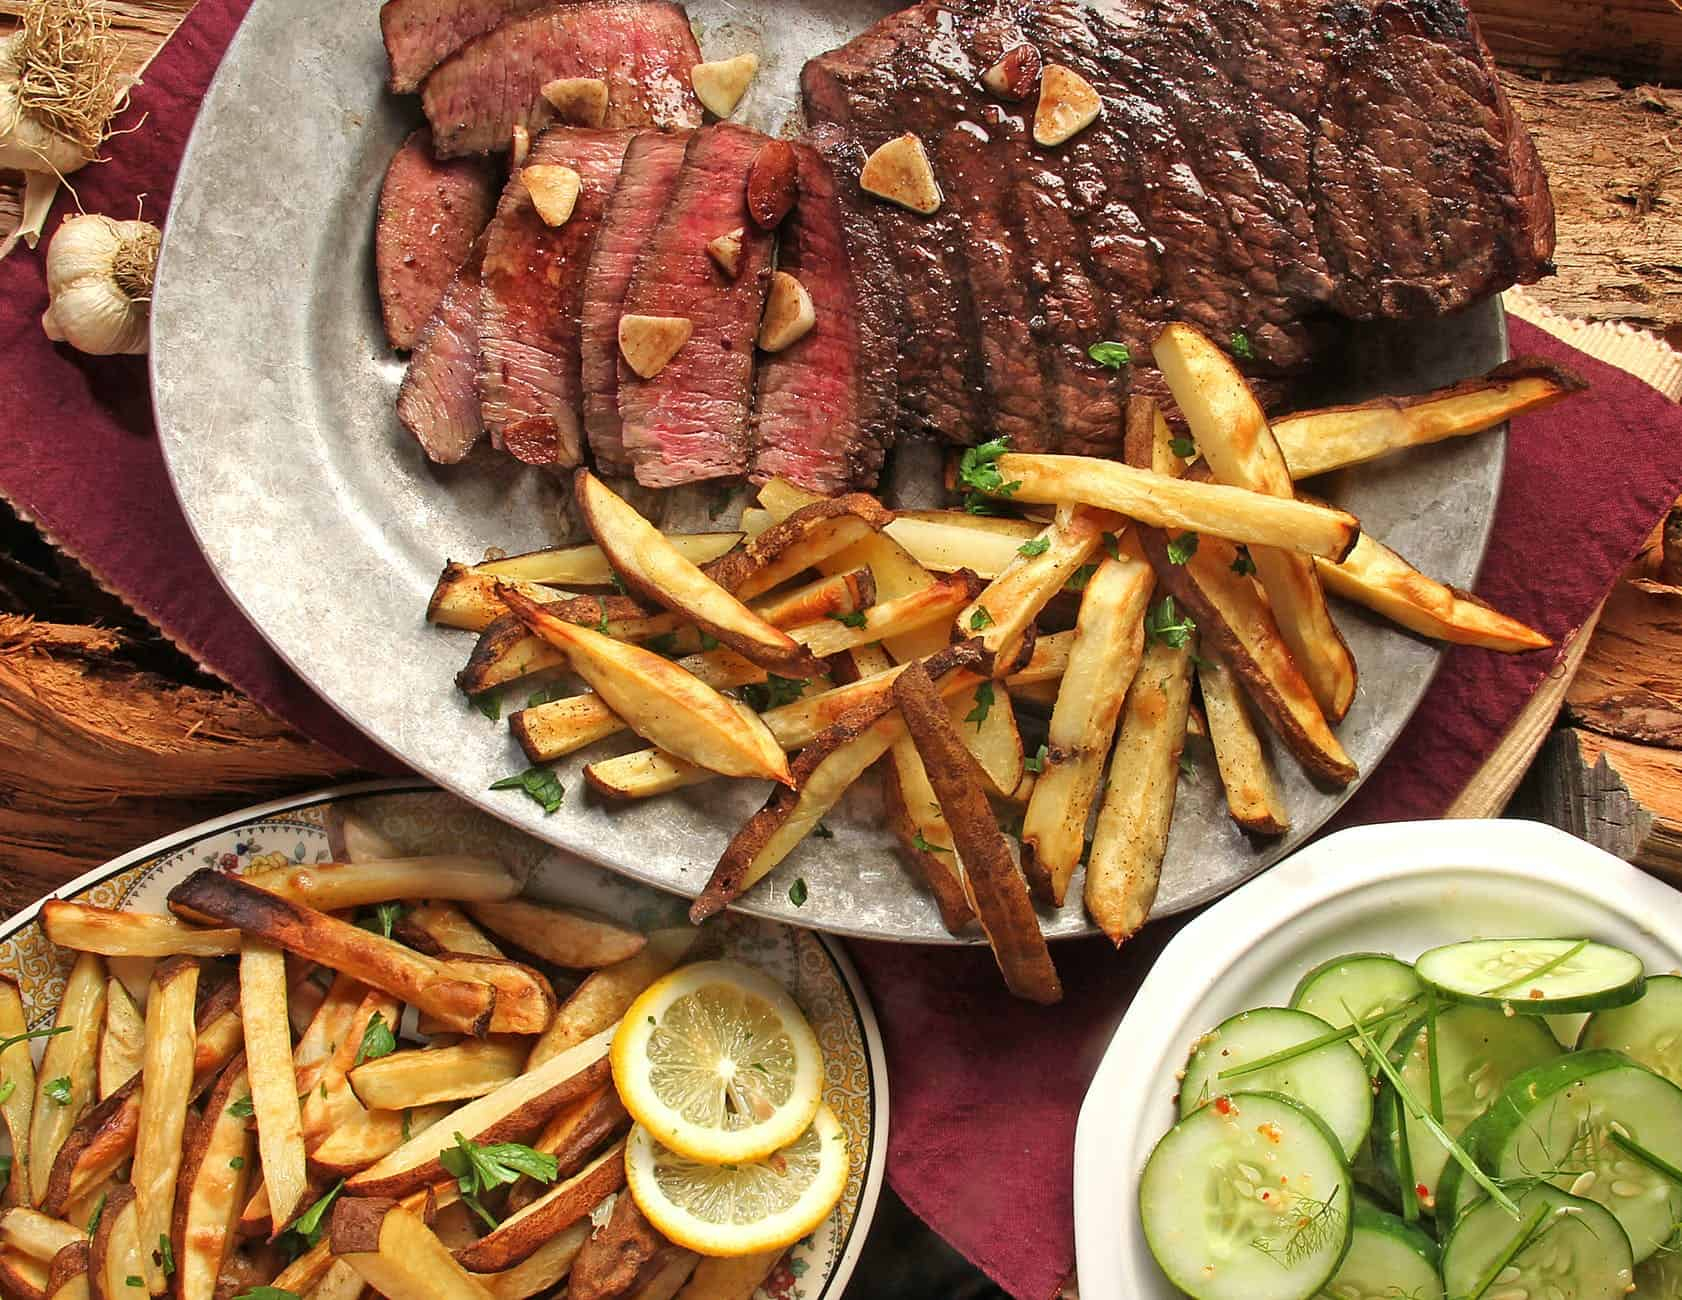 Taking Action to make steak and french fries on gray plate